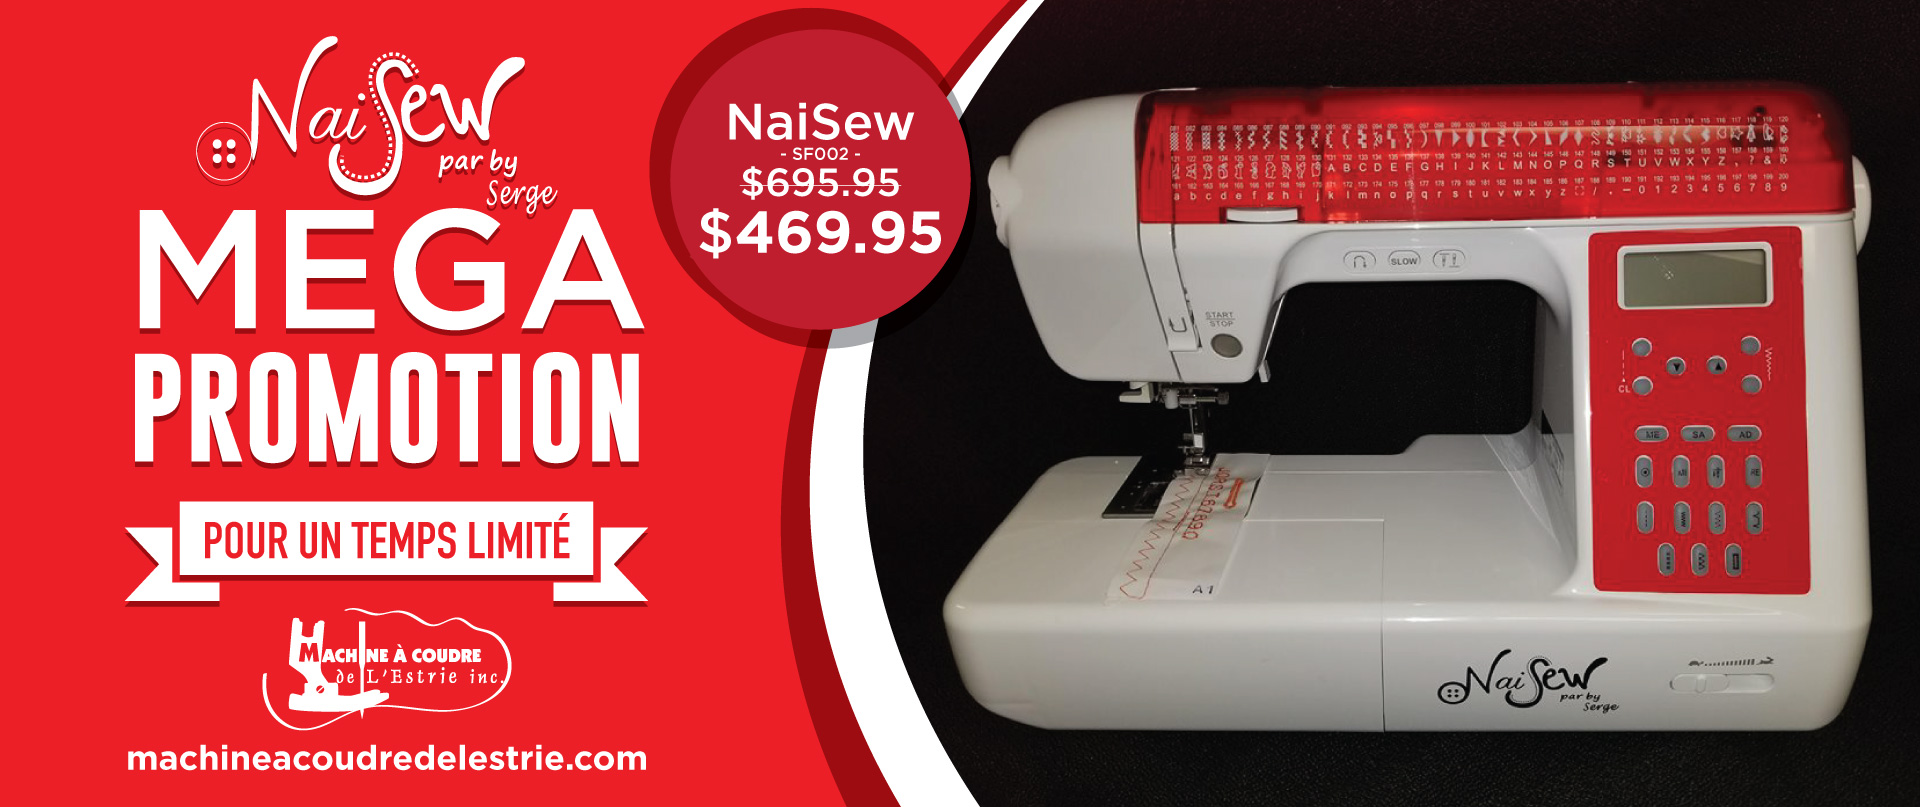 BANNER-PROMO-NAISEW-SF002